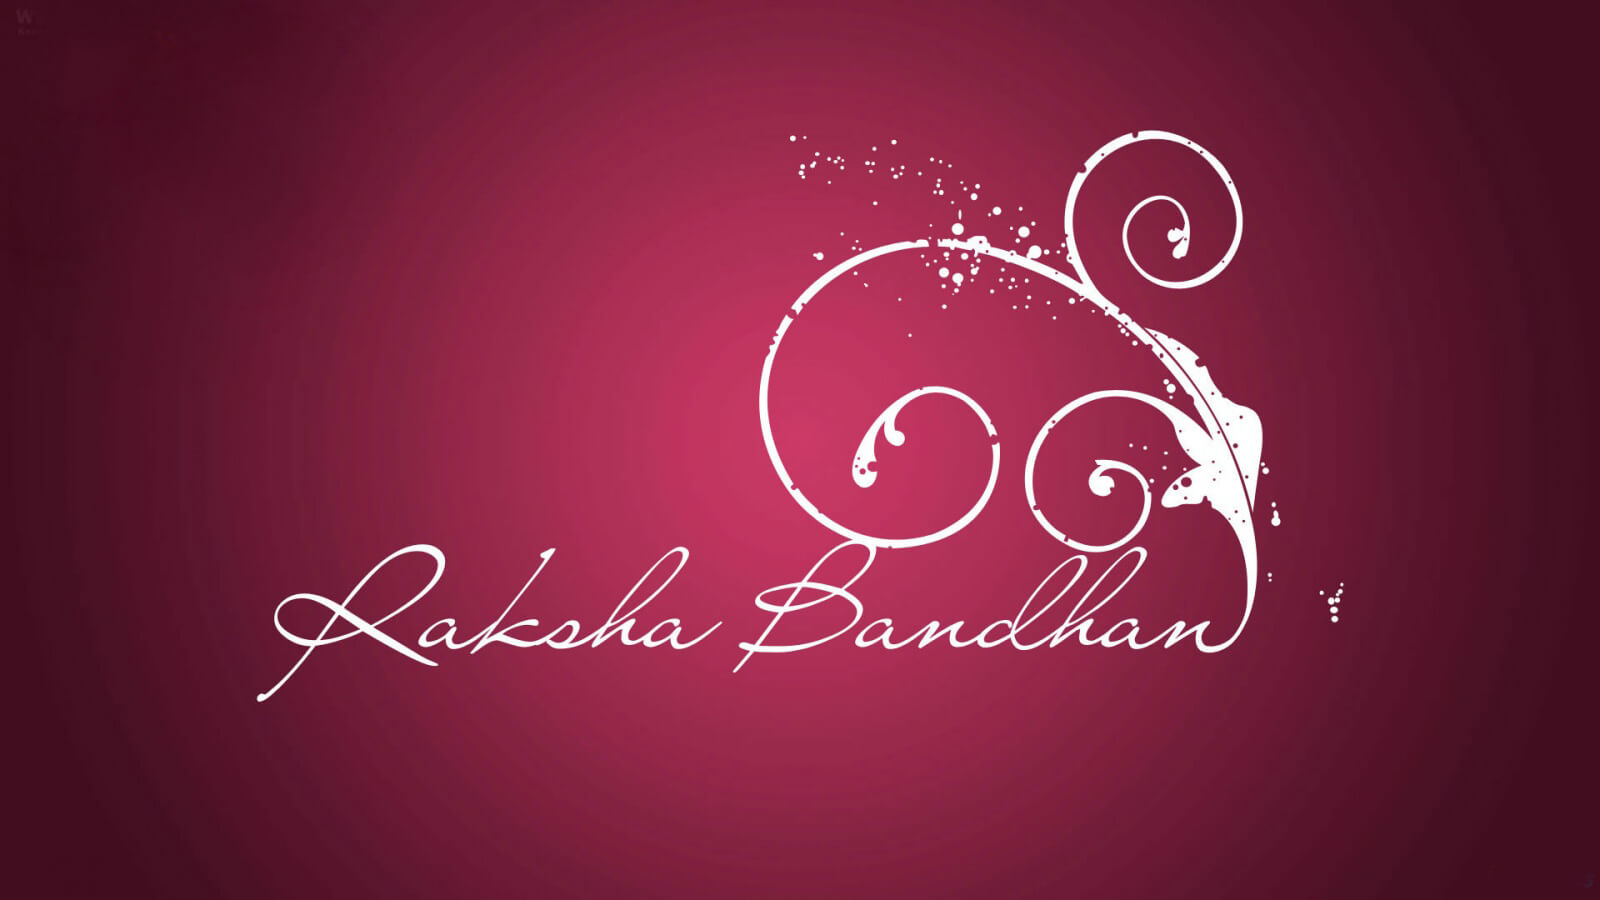 happy raksha bandhan awesome latest hd wallpaper